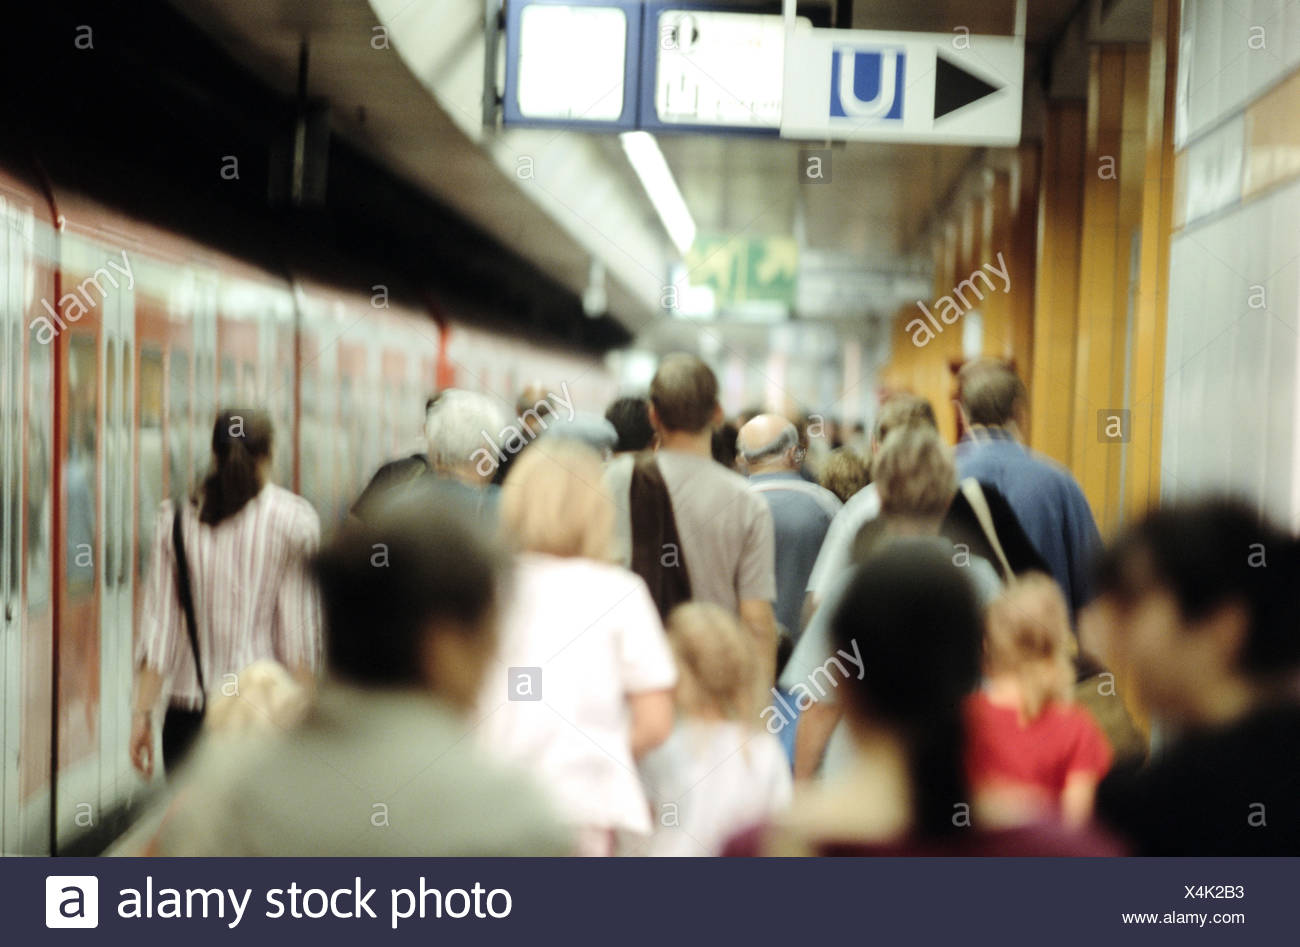 Subway stop, underground, platform, passengers, back view, railway station, stop, station, railway, means transportation, publicly, rail transports, transport, promotion, transportation human beings, train connection, occupational commuter, commuter, crowd people, Rushhour, train, trajectory - Stock Image